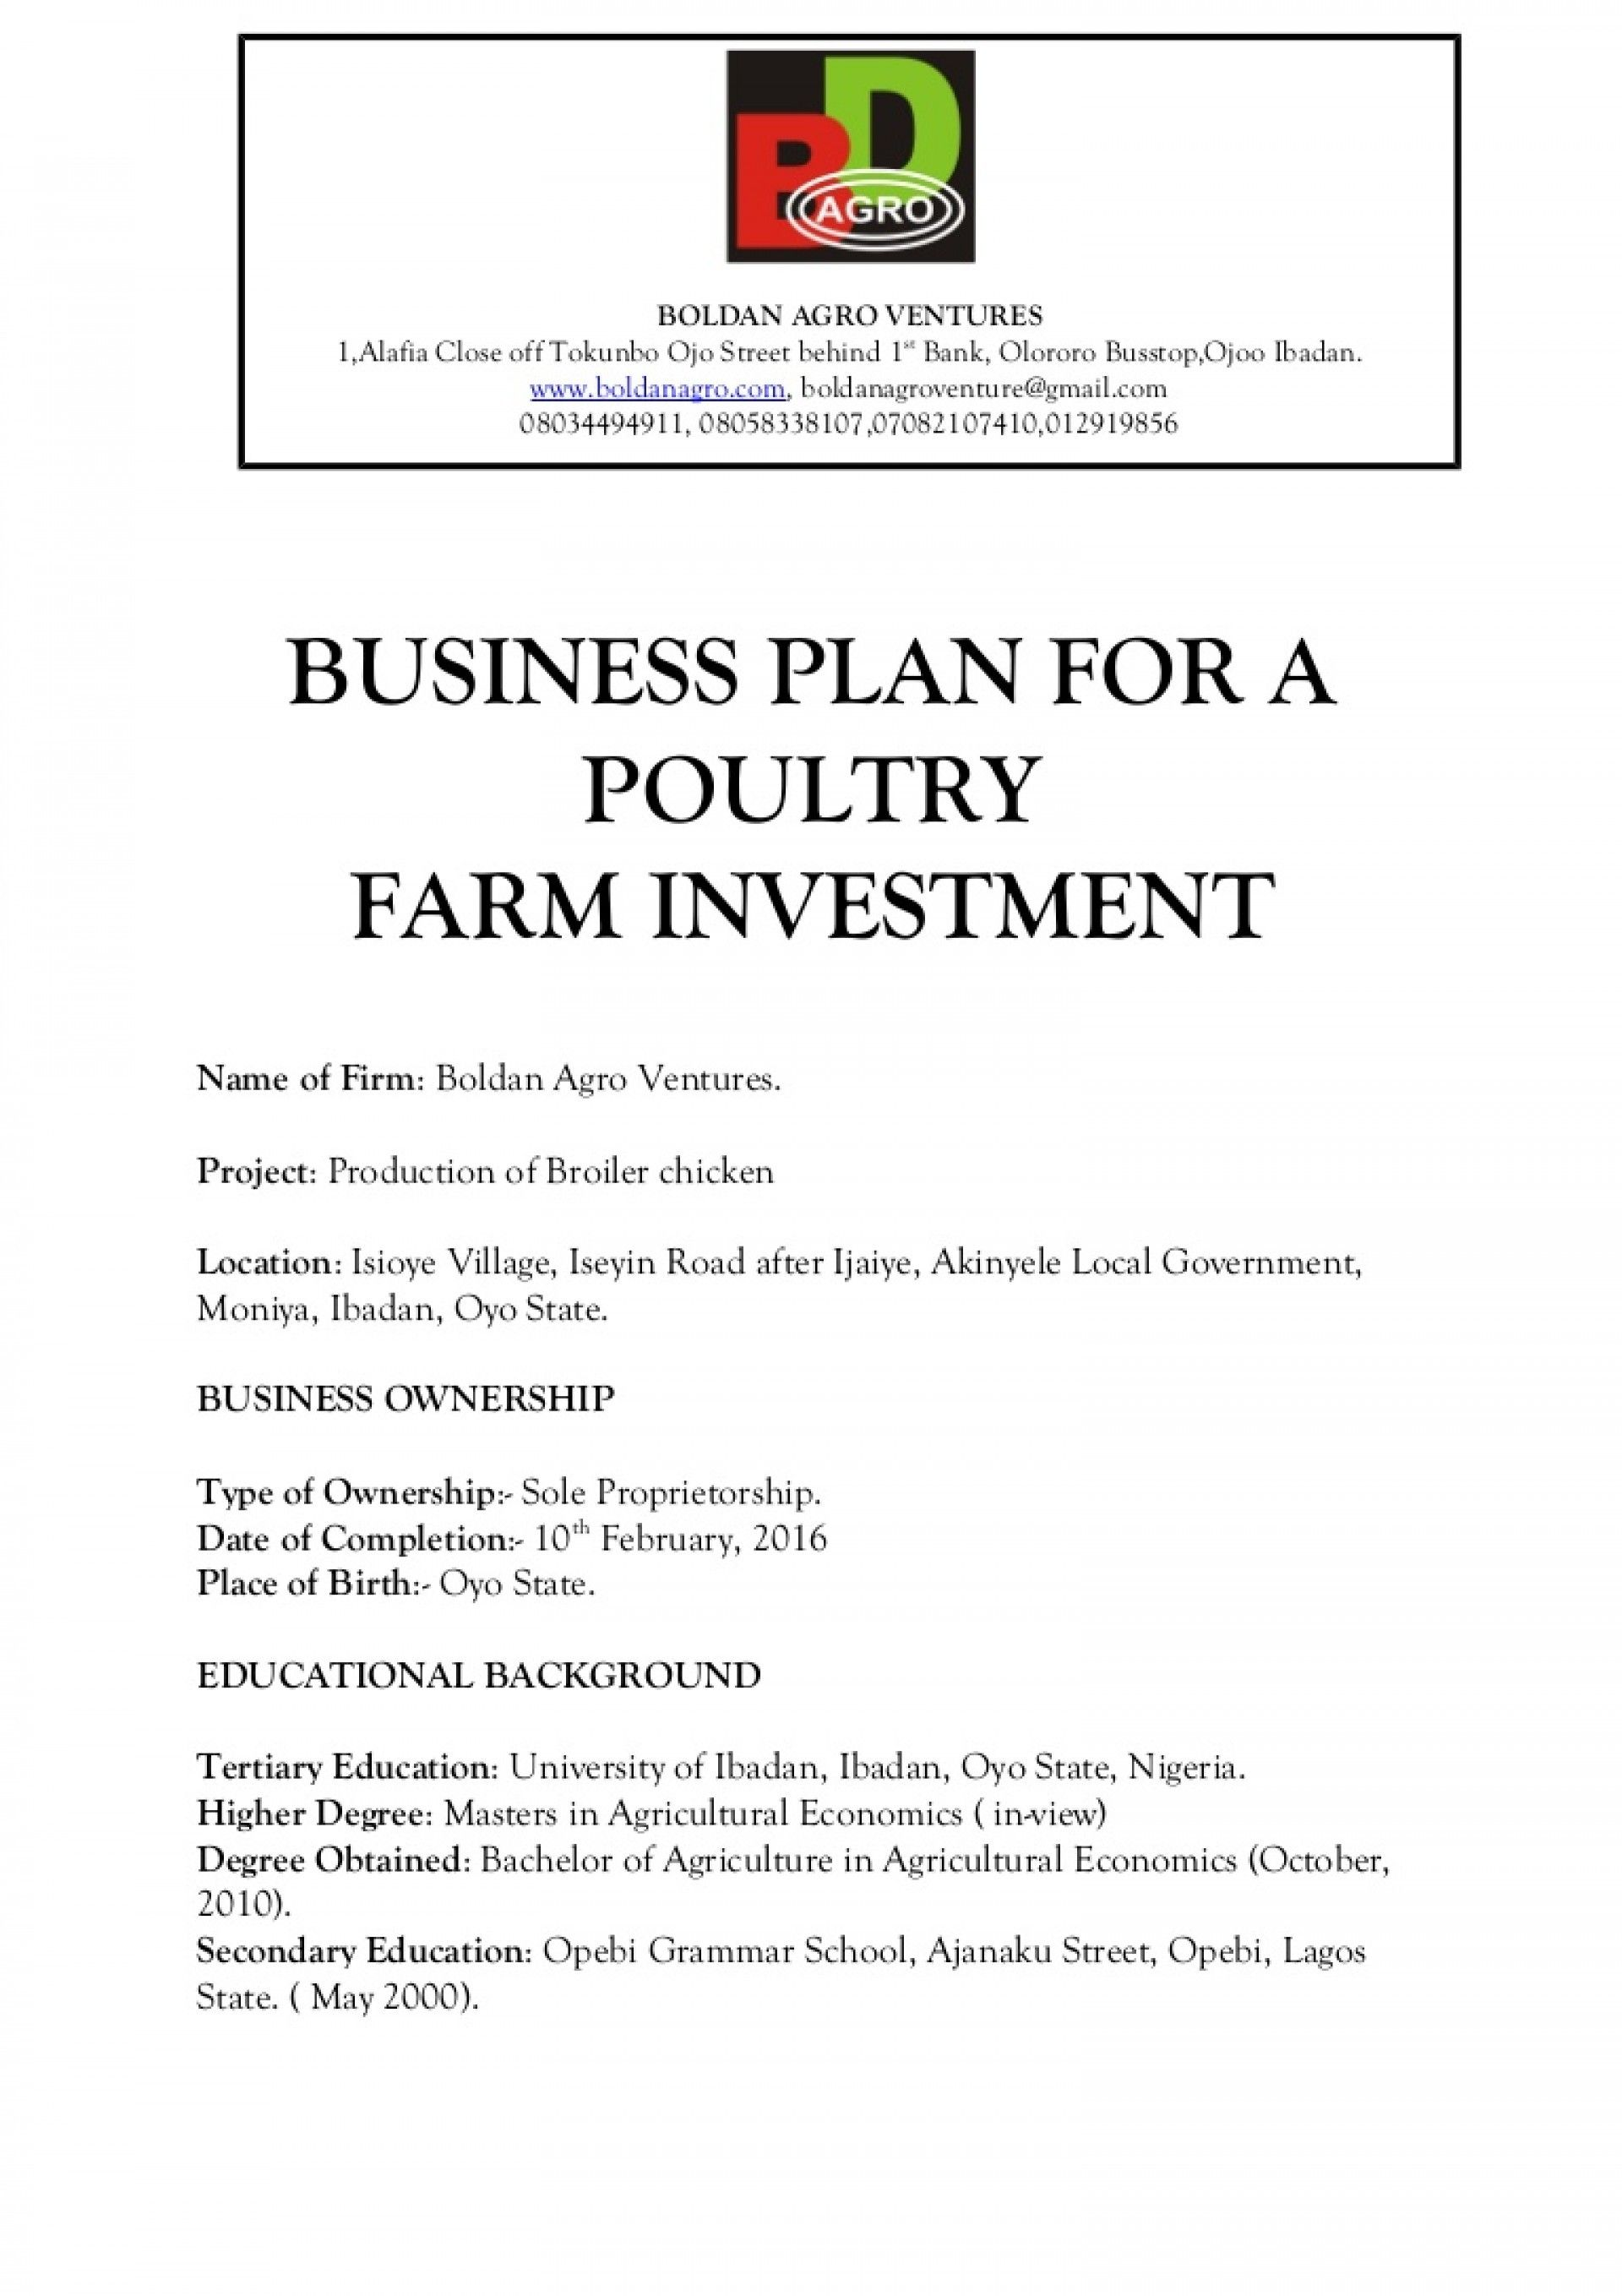 Download New Business Plan Template For Poultry Farming Can Save